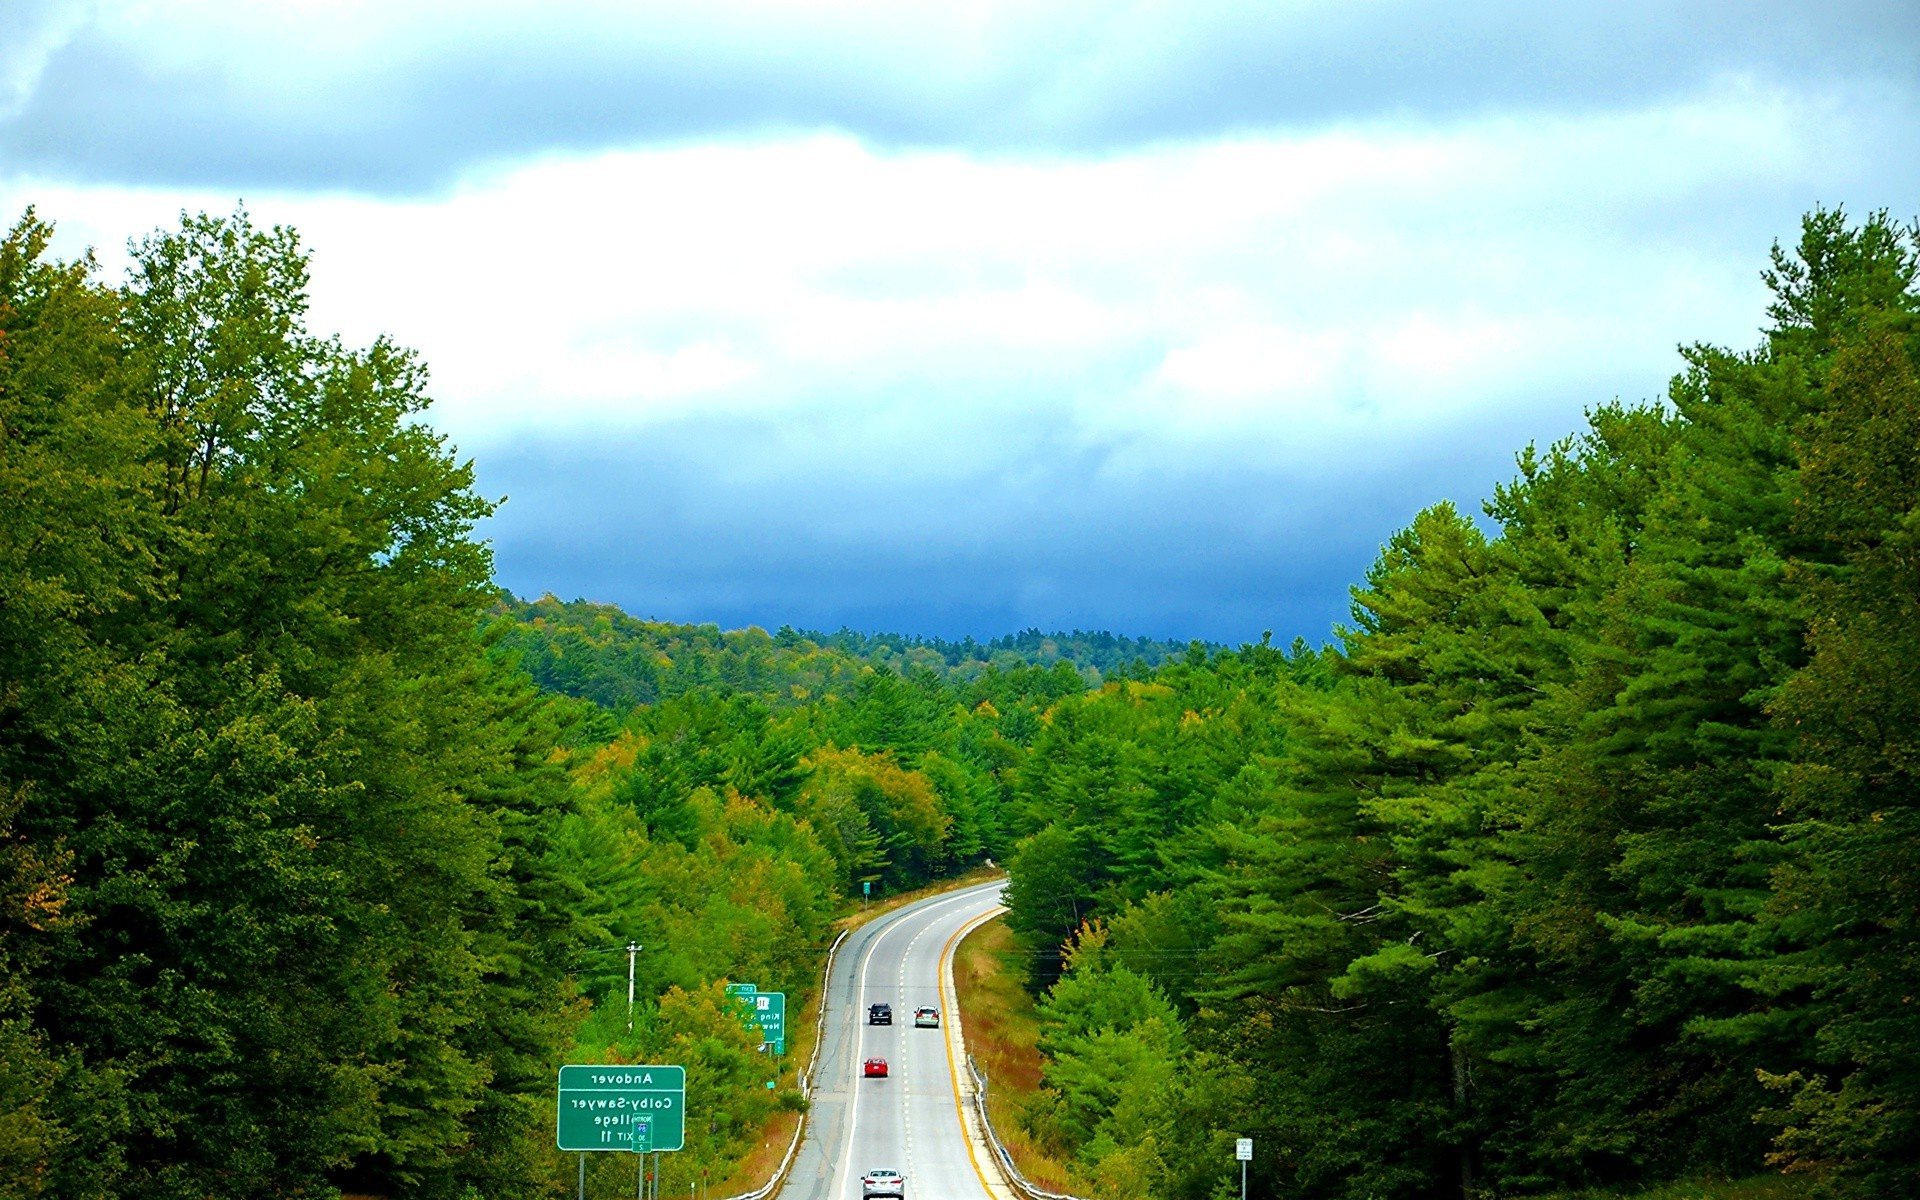 Cars Movie Hd Wallpapers 1080p Nature Landscape Road Forest Road Sign Vermont